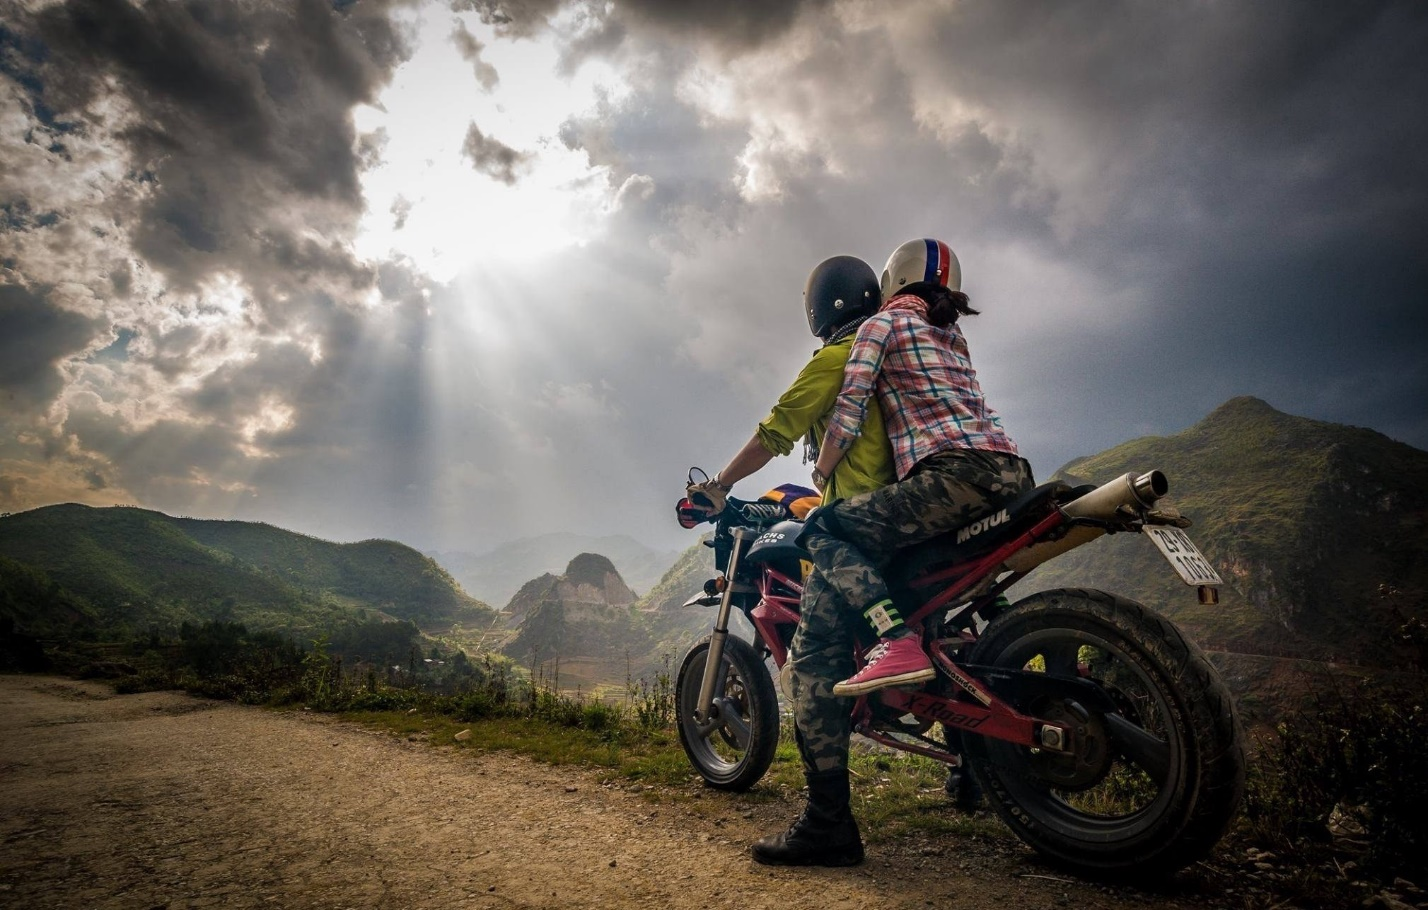 Motorbike is an ideal vehicle for you to explore Sapa